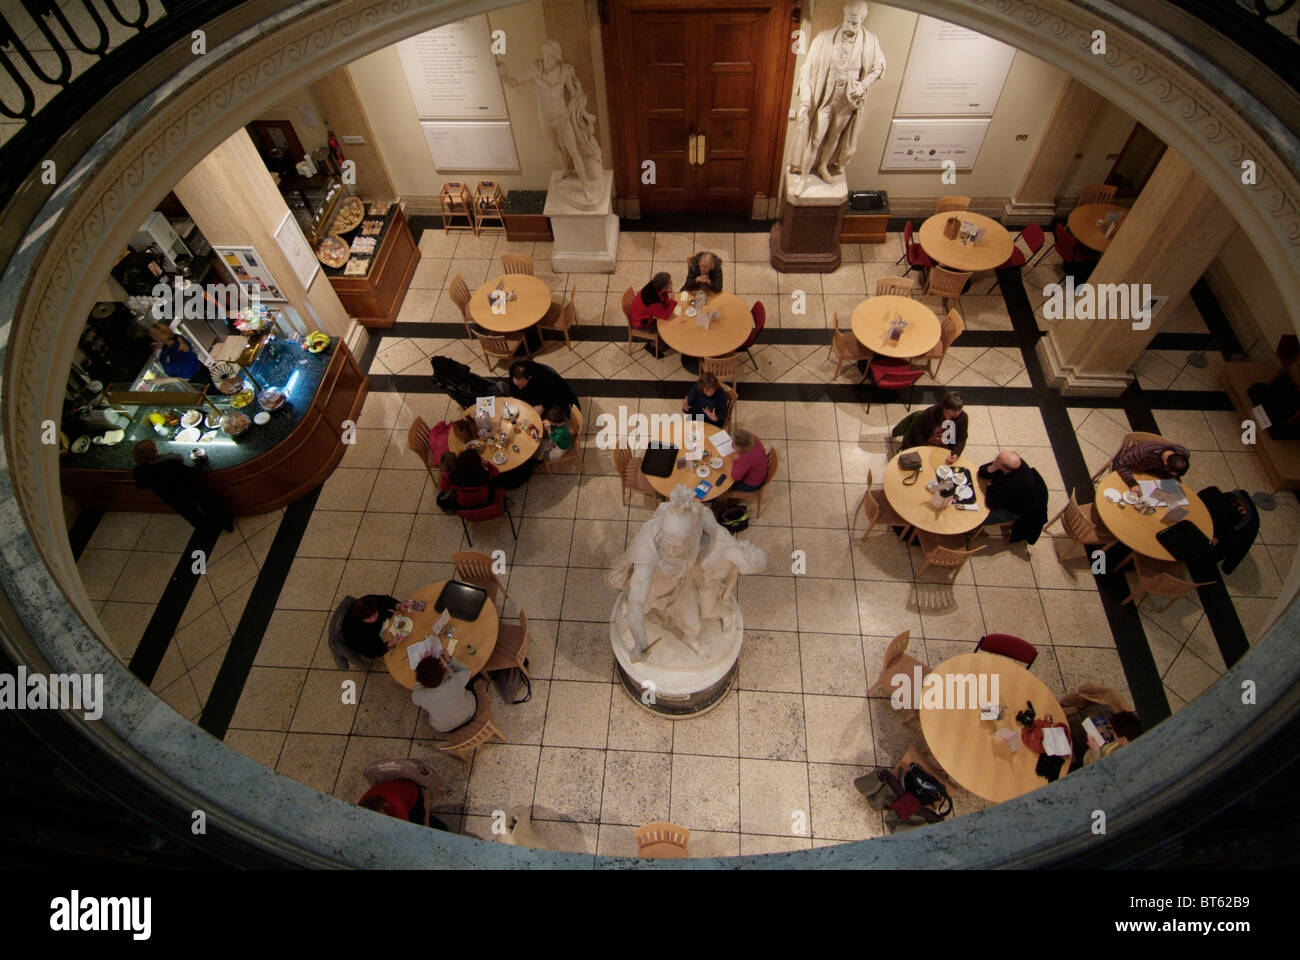 Cafe Restaurant Cafeteria Walker Art Gallery Liverpool Bar Brown Stock Photo Alamy